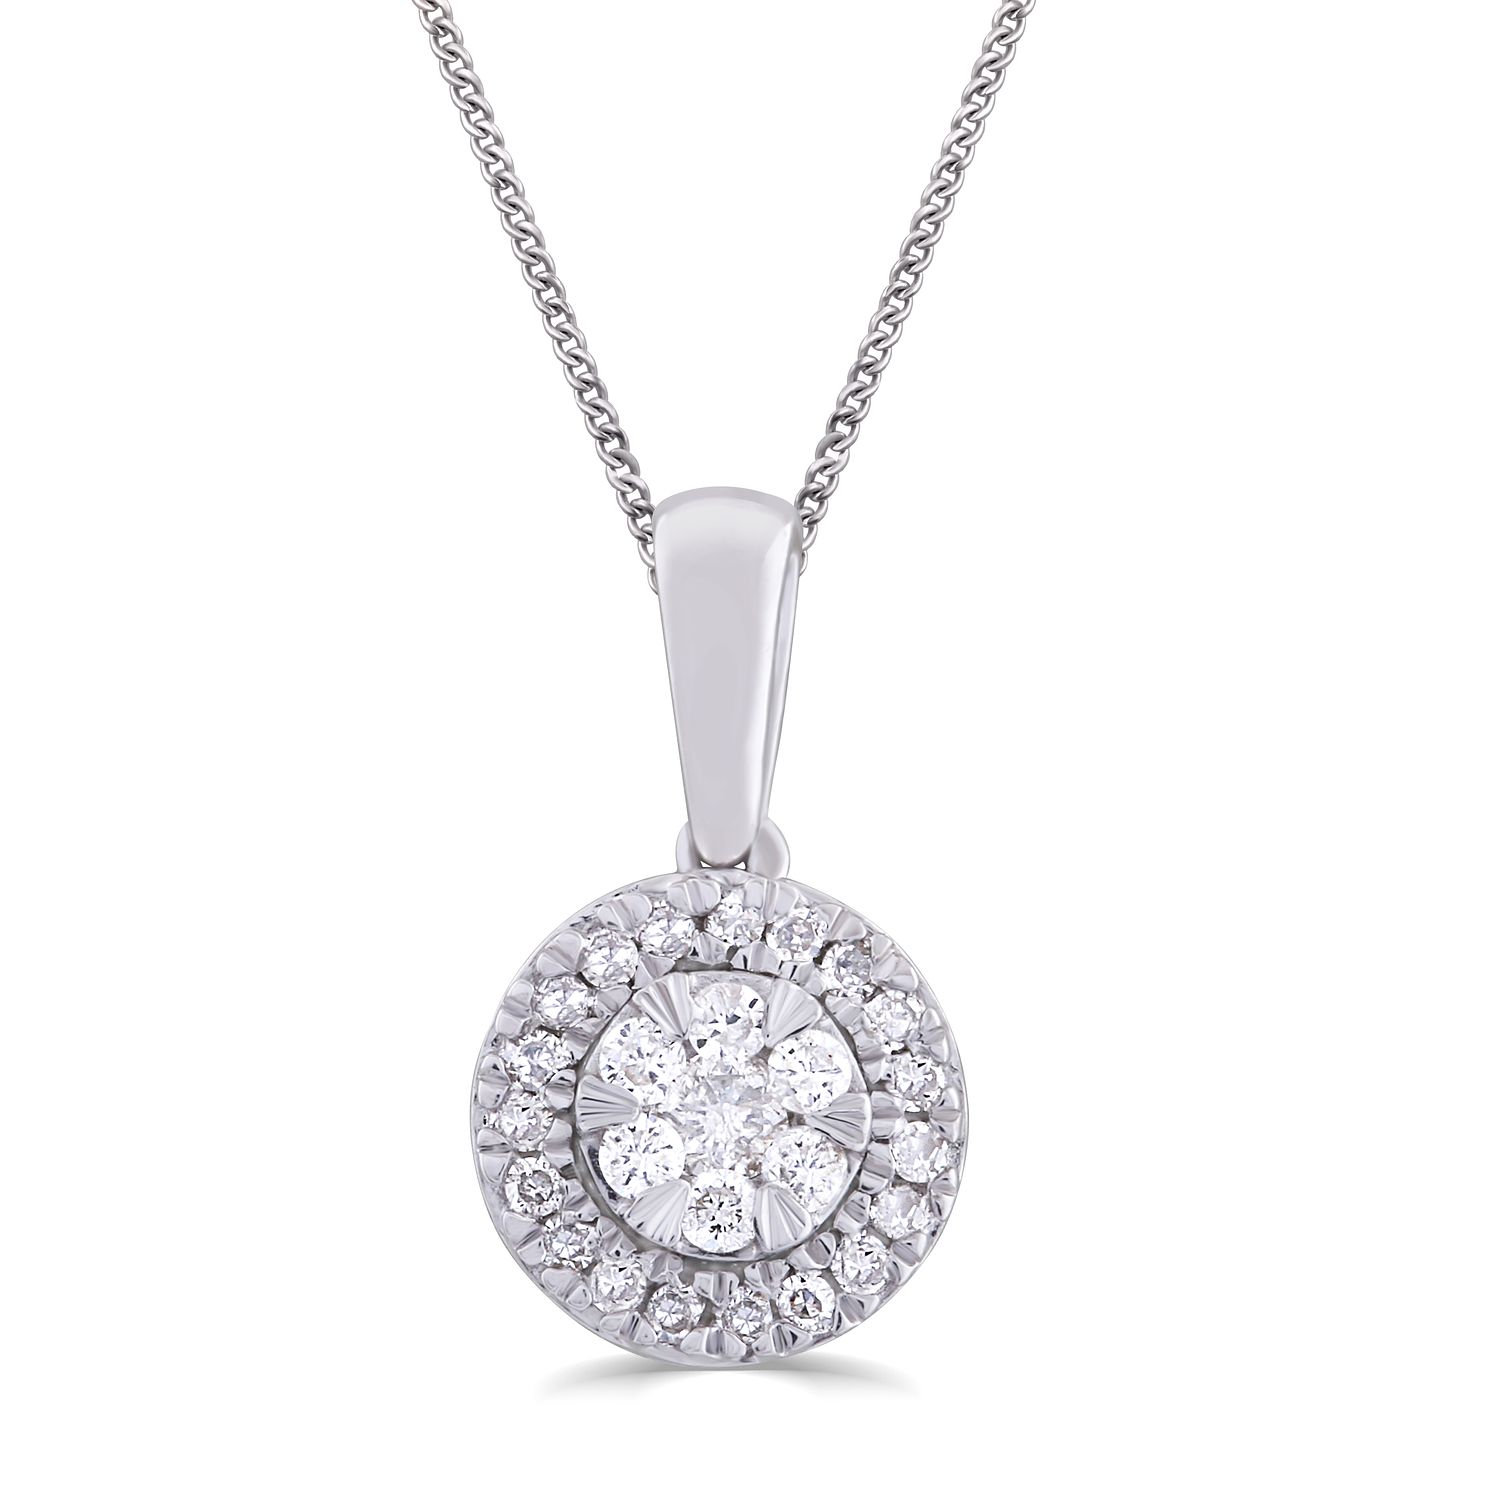 9ct White Gold & 0.10ct Total Diamond Pendant - Product number 5033004